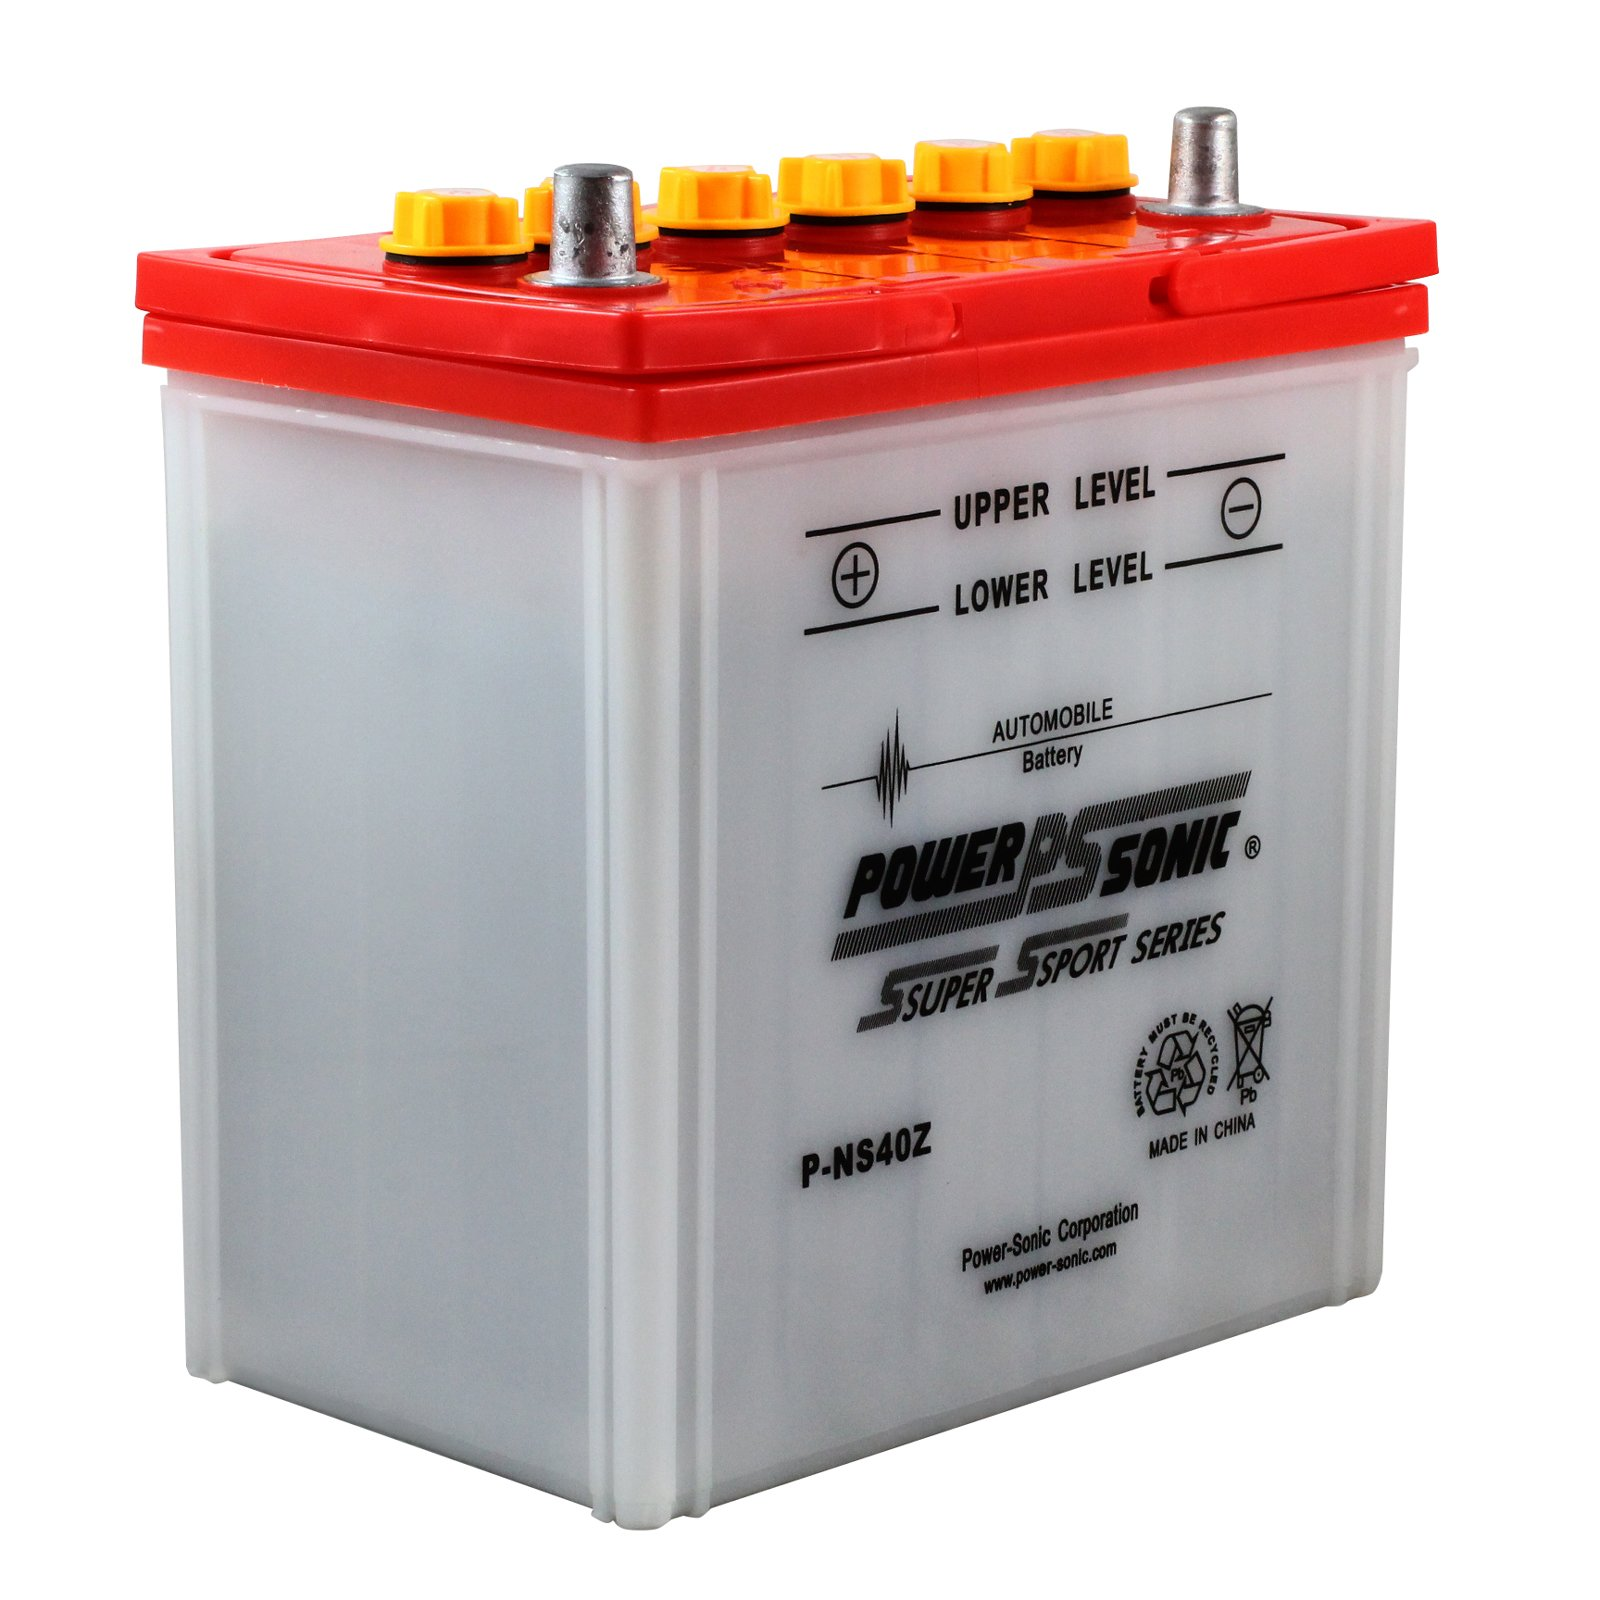 Power Sonic Ns40z 12 Volt Dry Charge Battery Without Acid